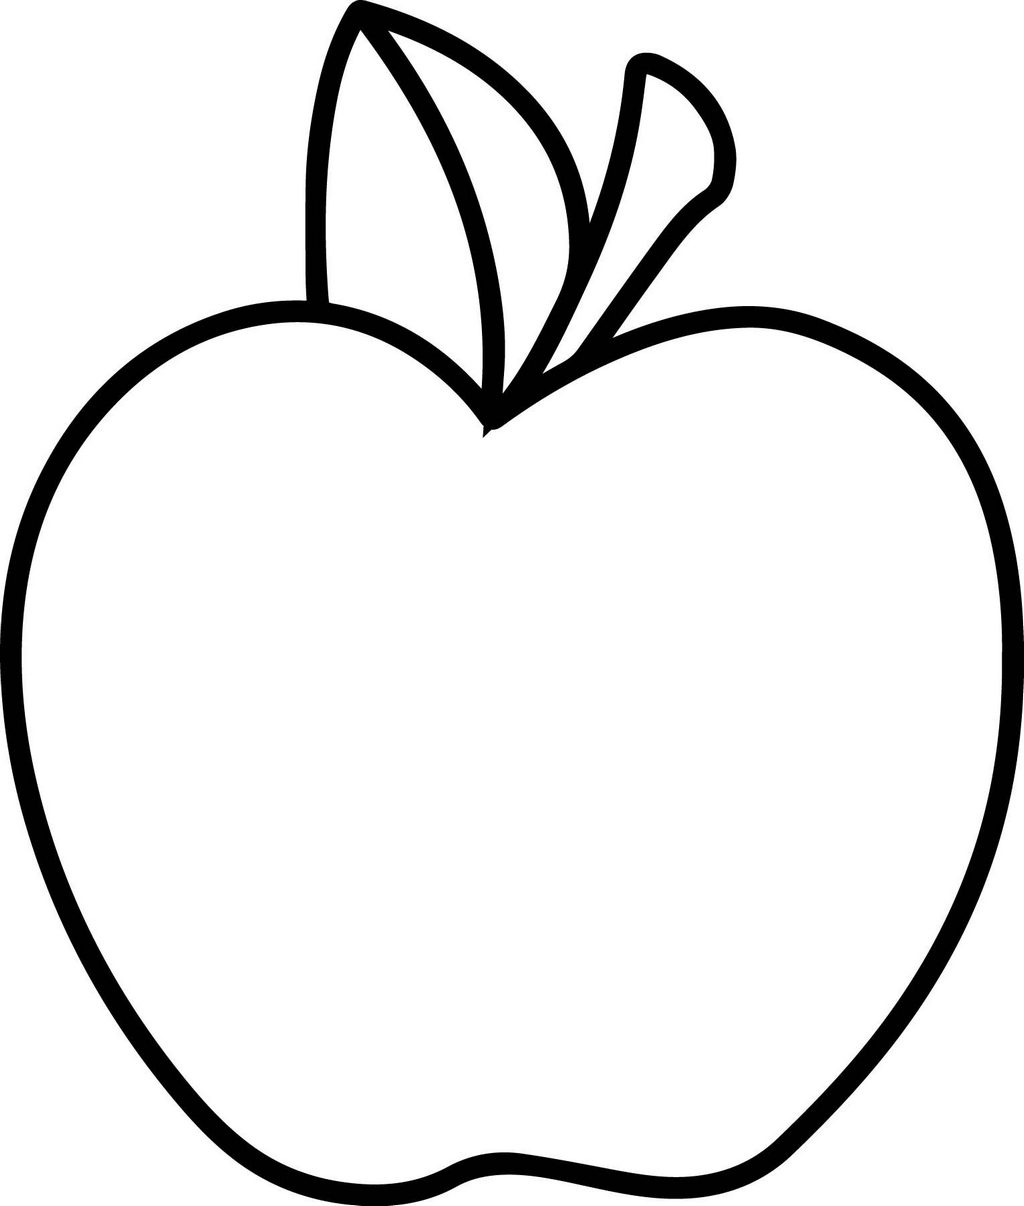 coloring apple page free printable apple coloring pages for kids coloring apple page